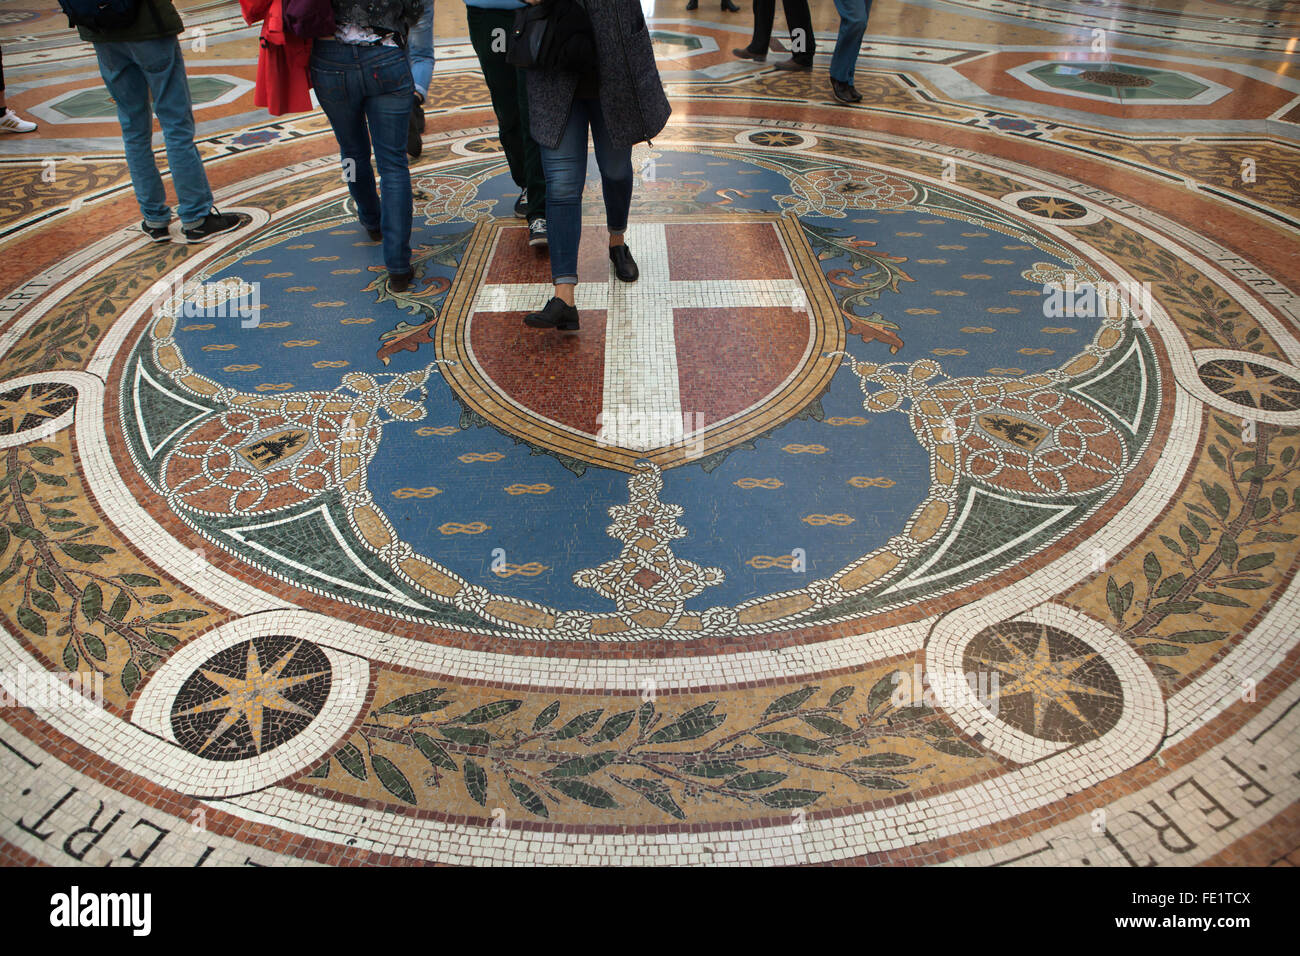 Coat of arms of the House of Savoy depicted on the mosaic floor in the Galleria Vittorio Emanuele II in Milan, Lombardy, - Stock Image